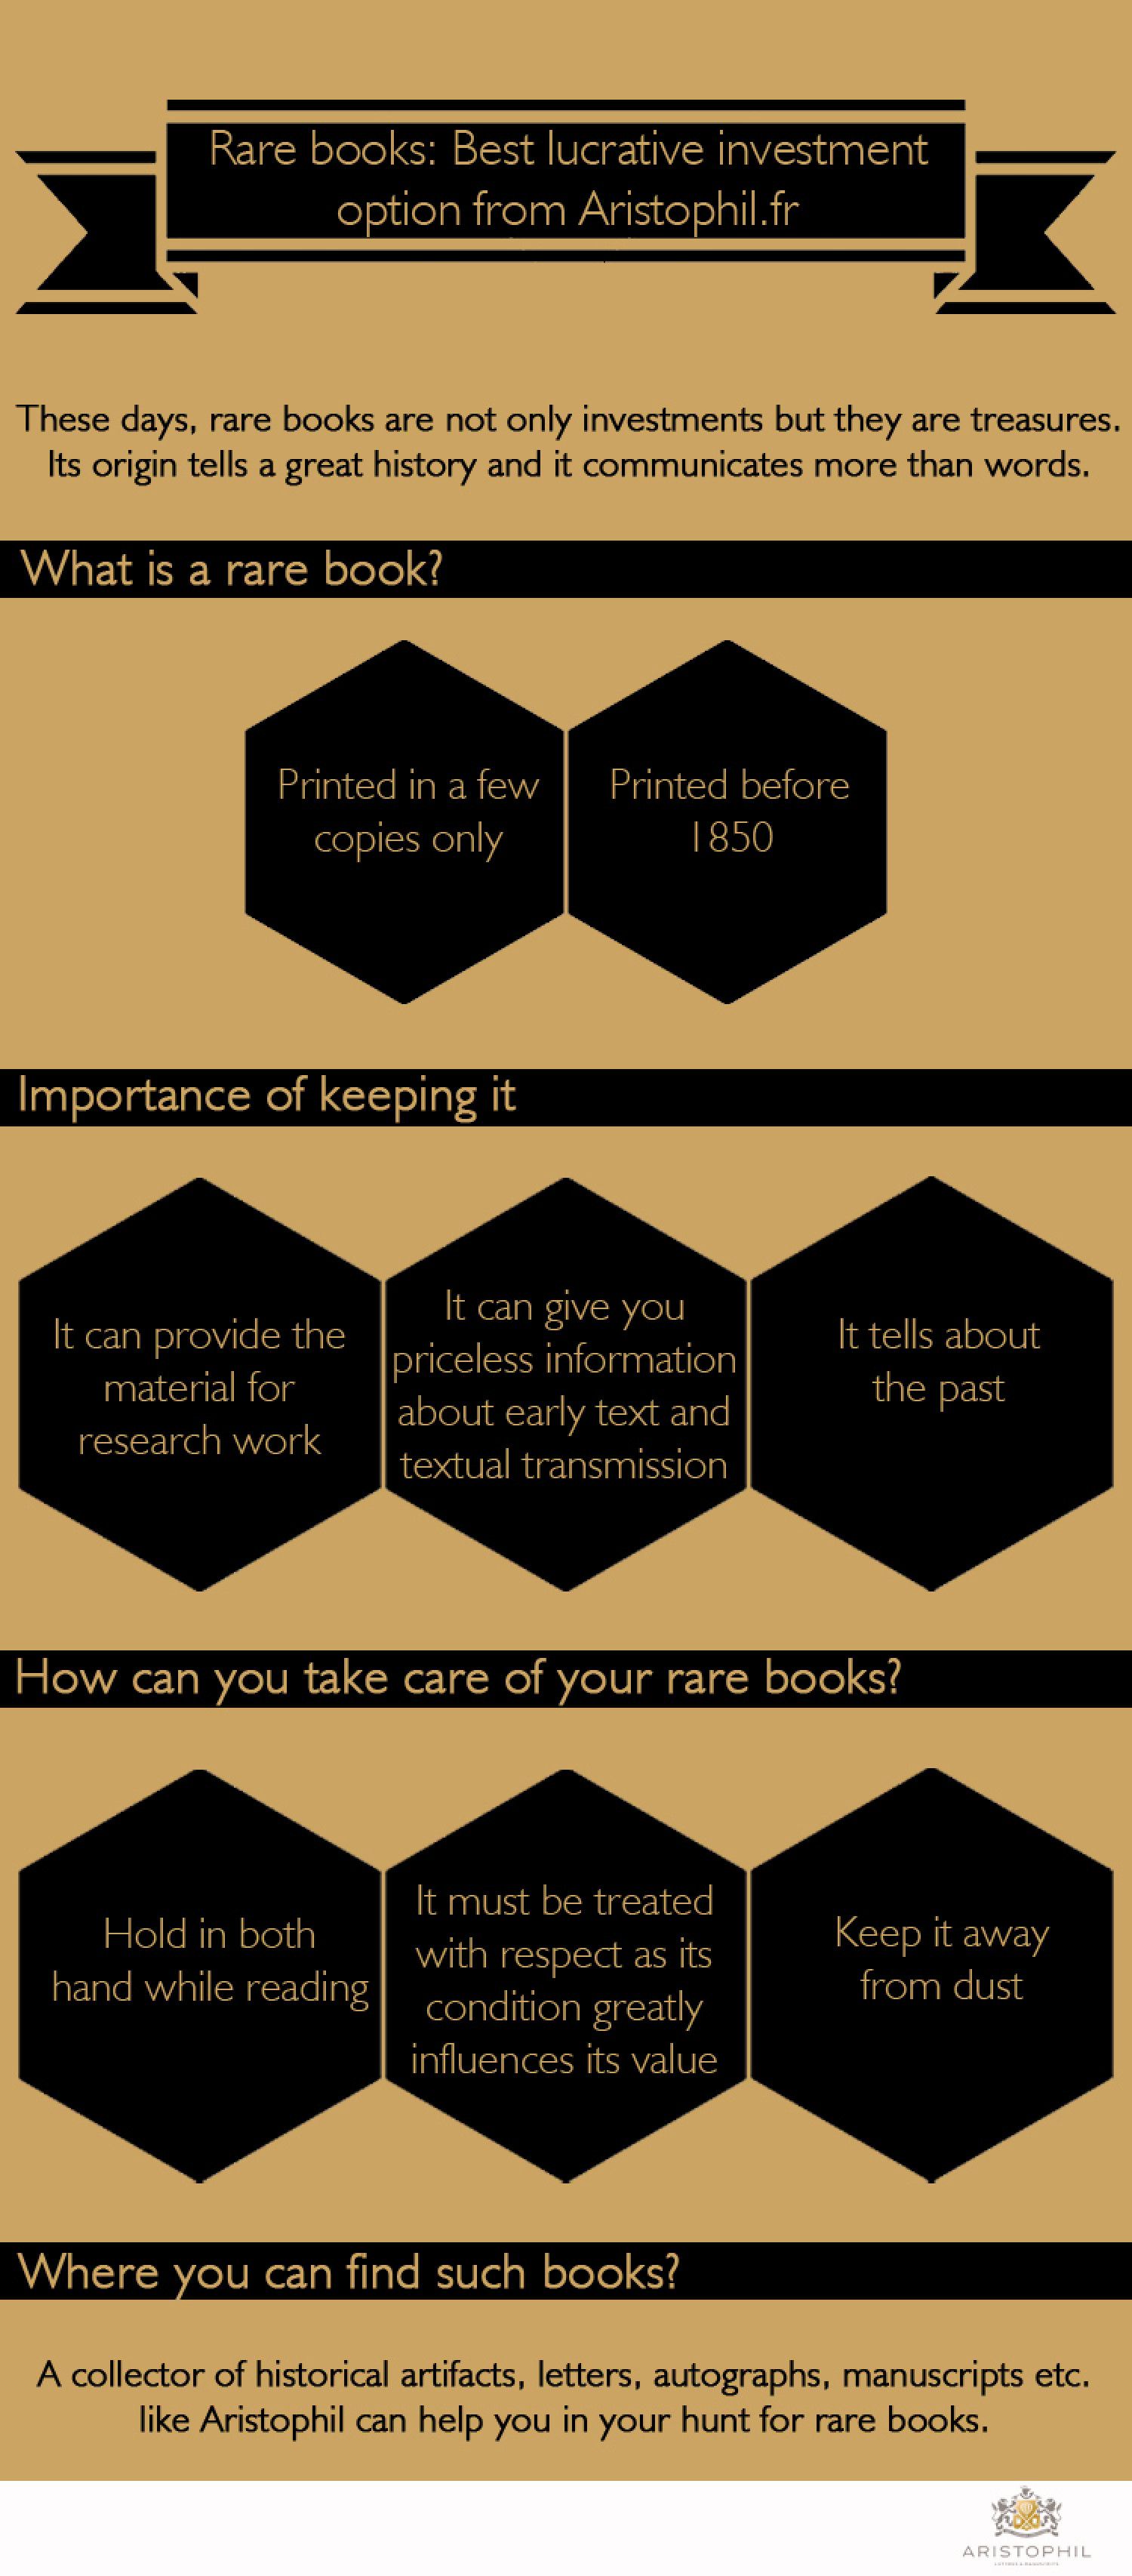 Rare books: Best lucrative investment option from Aristophil.com Infographic